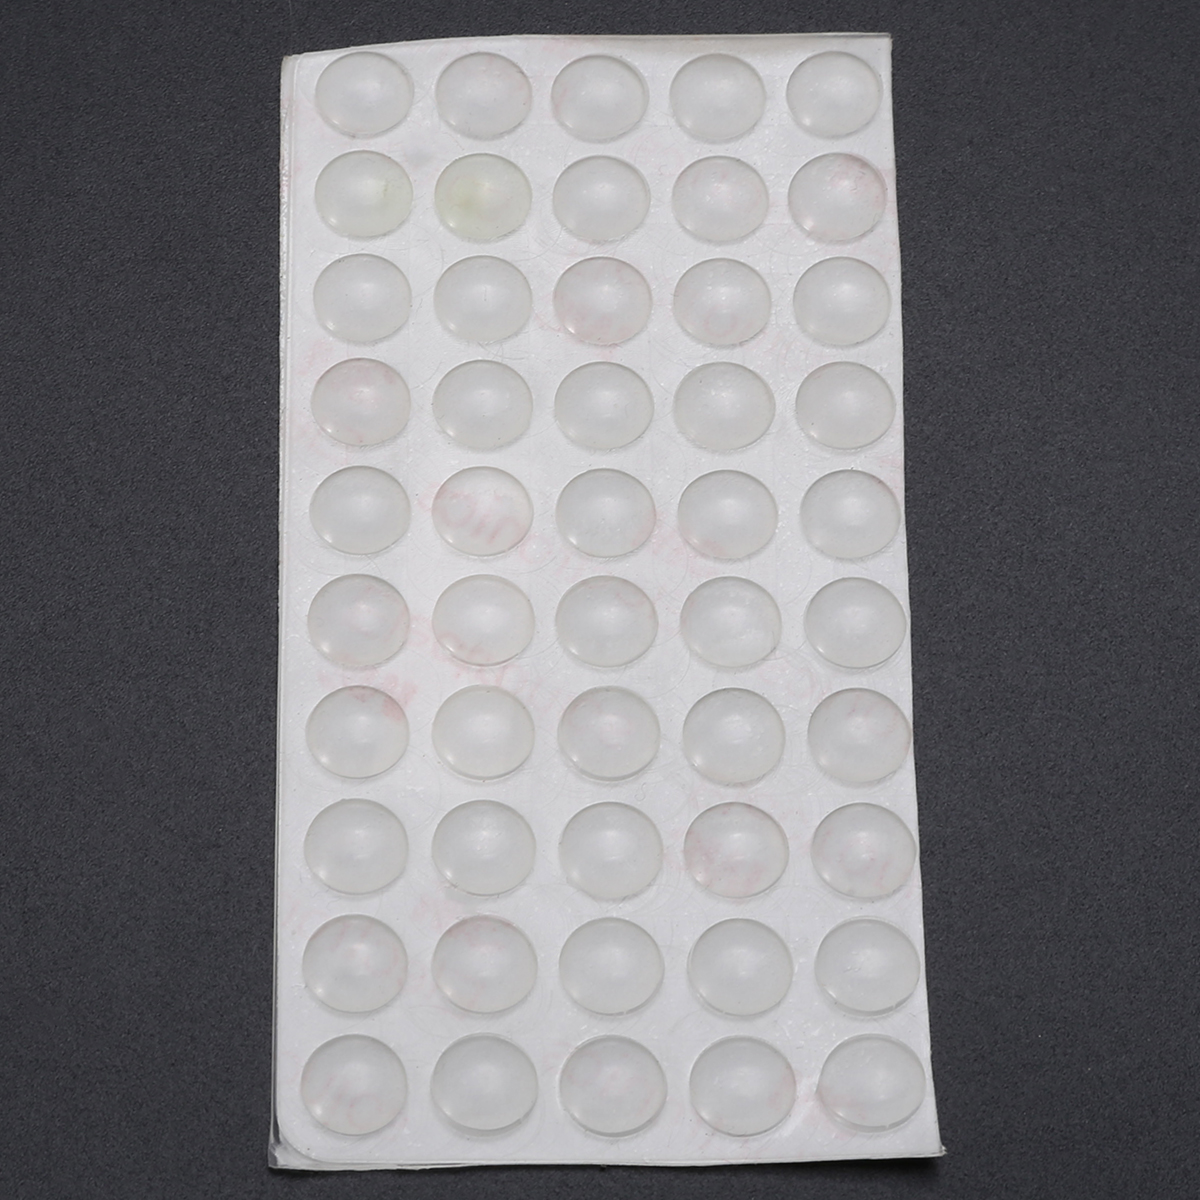 Shellhard 50pcs Self Adhesive Rubber Feet Pads Silicone